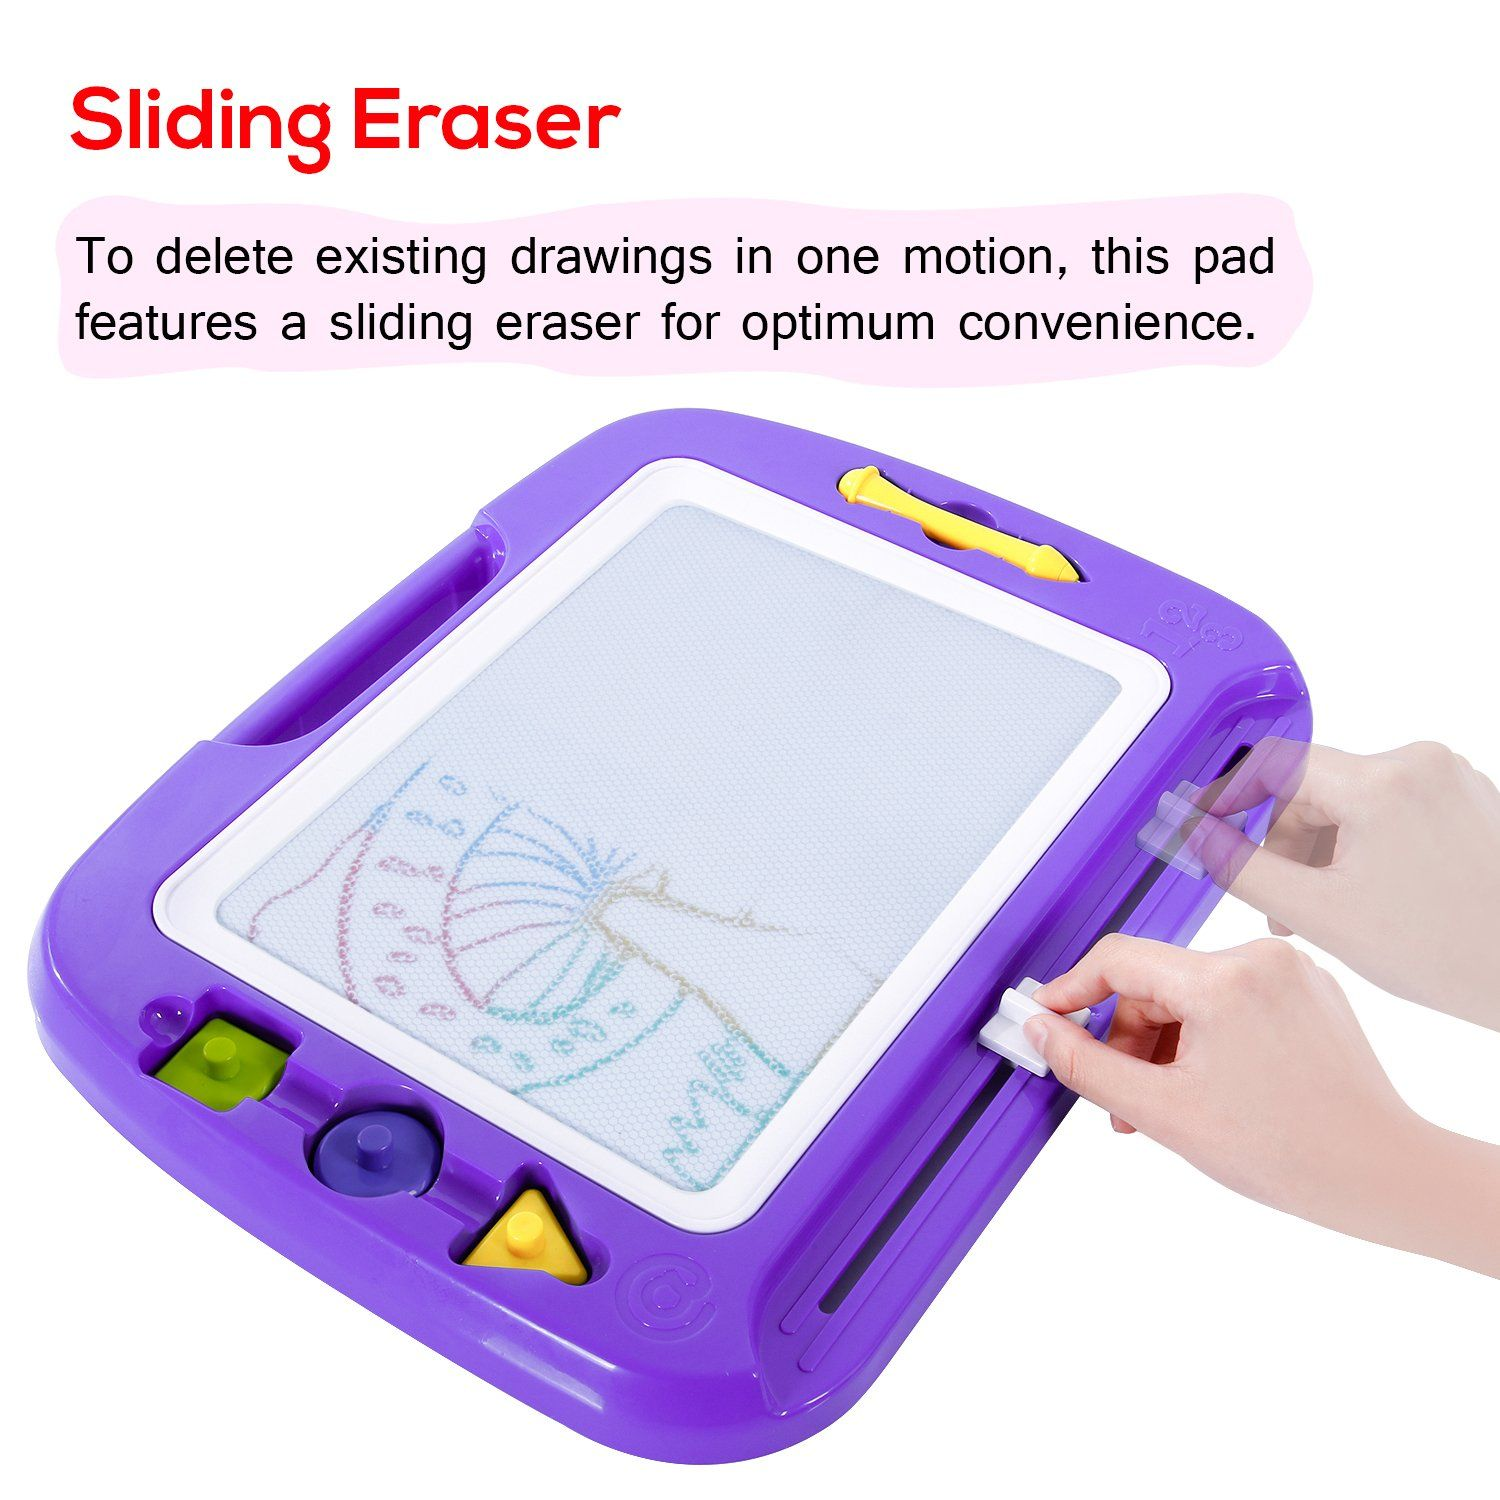 Toys for kids 8 and up  SGILE X Kids Magna Drawing Board Toy with Foldable Stand